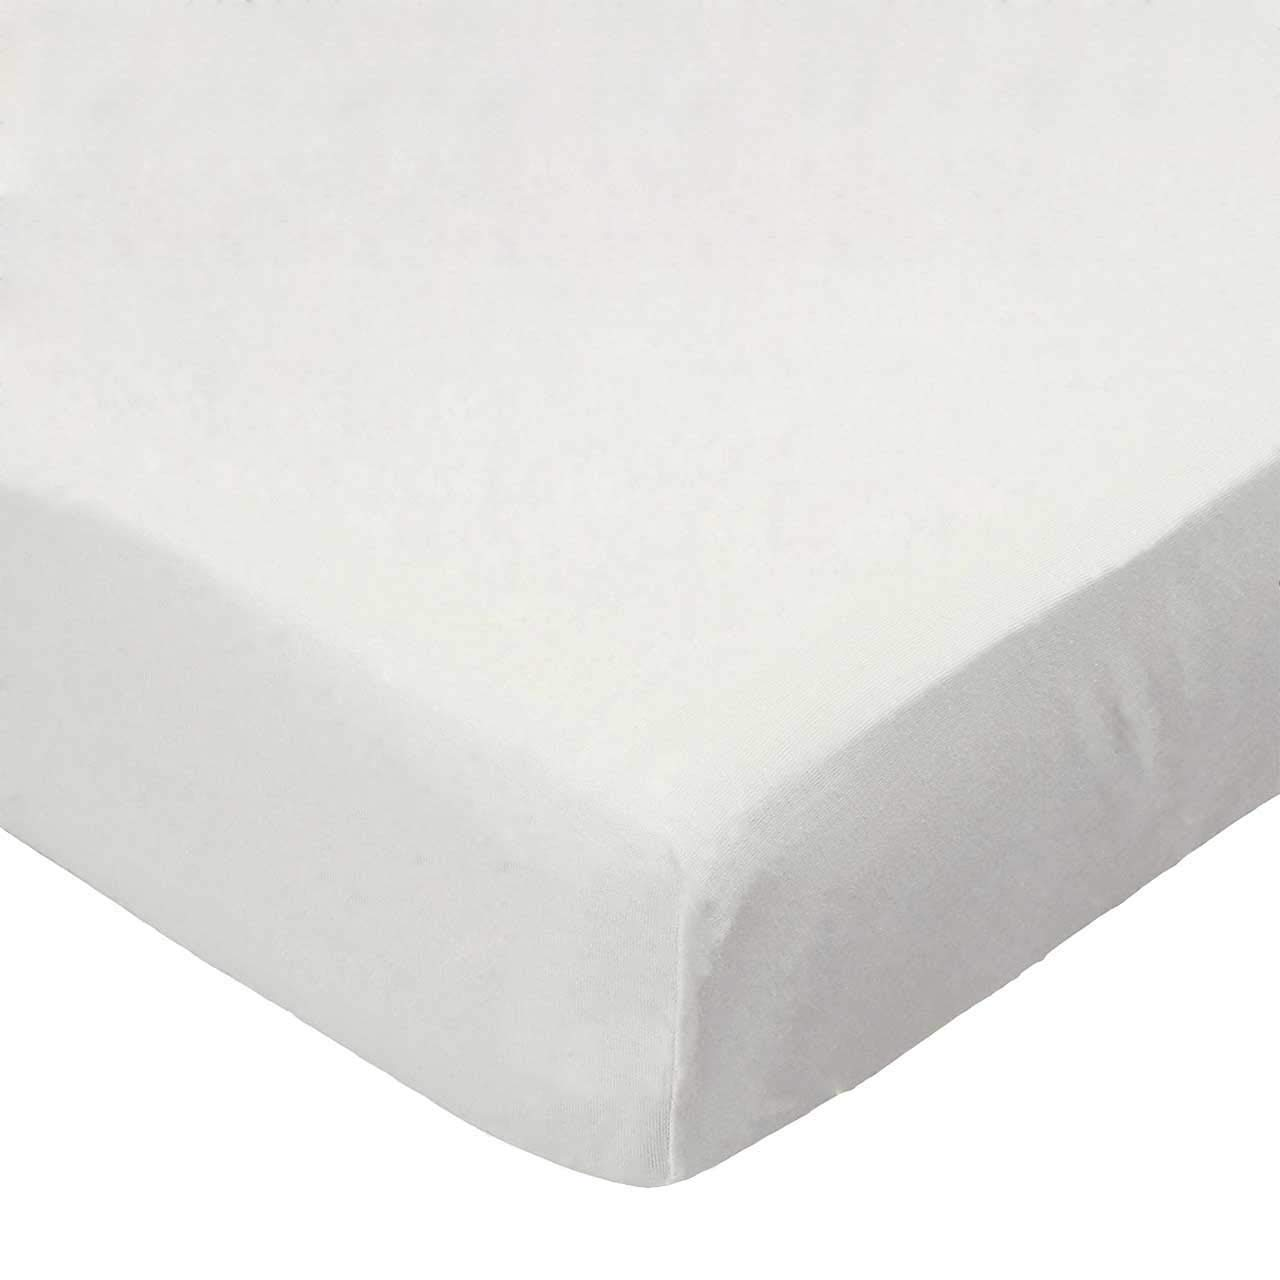 SheetWorld Fitted Crib / Toddler Sheet - Organic Ivory Jersey Knit - Made In USA by sheetworld   B004OSZHKC